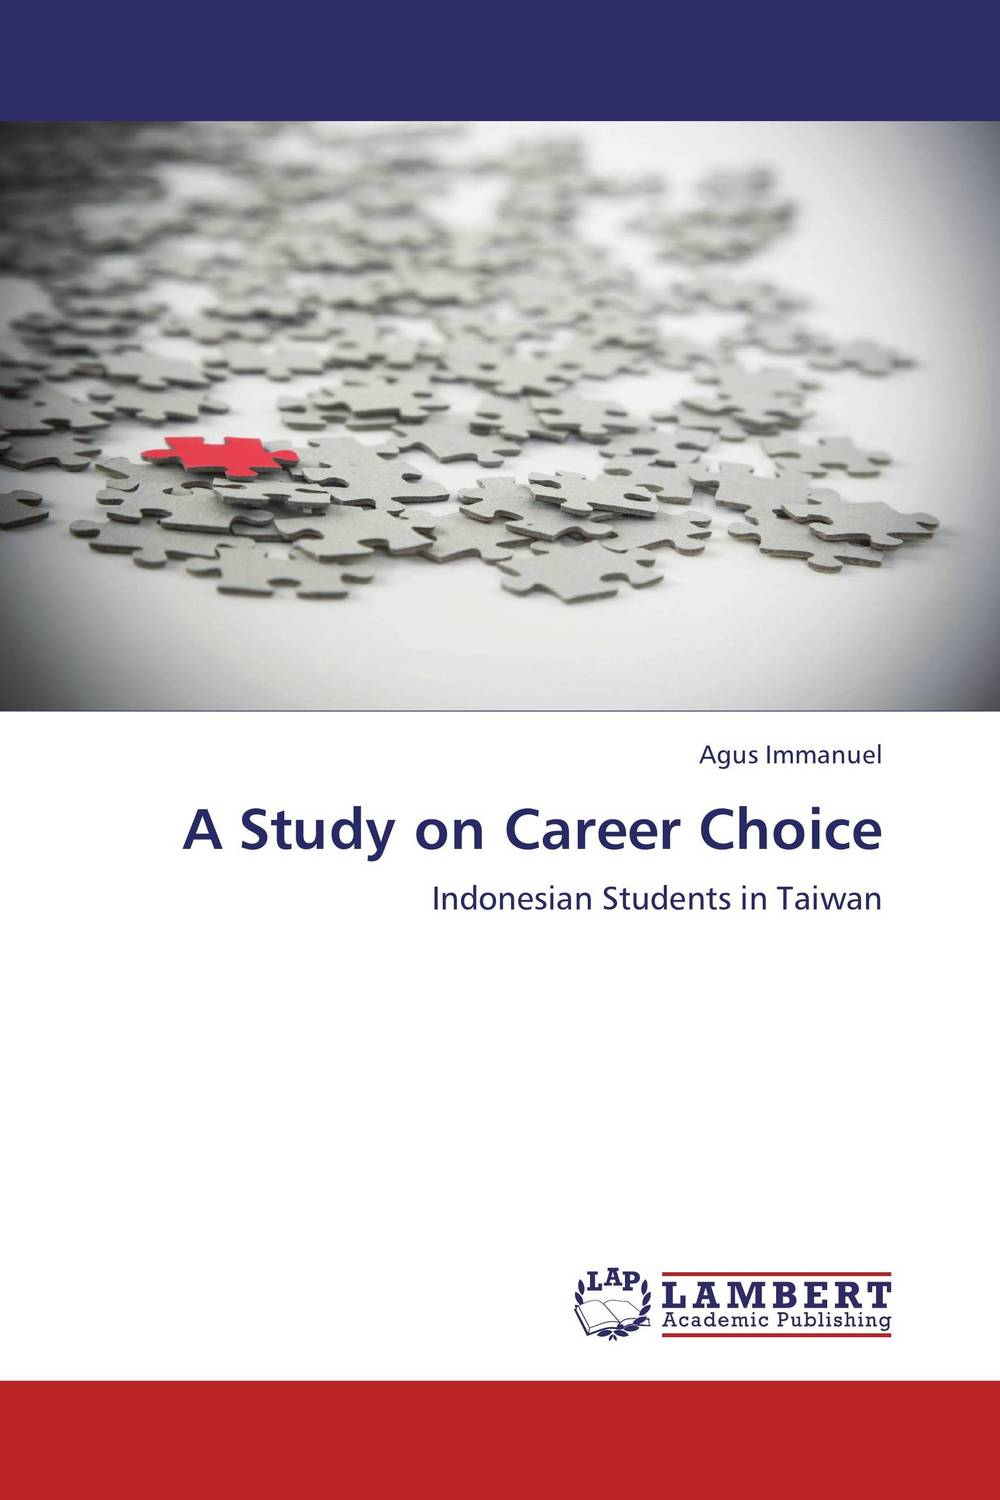 A Study on Career Choice abdullah alzahrani and hamid osman attitudes of medical students regarding fm as a career choice